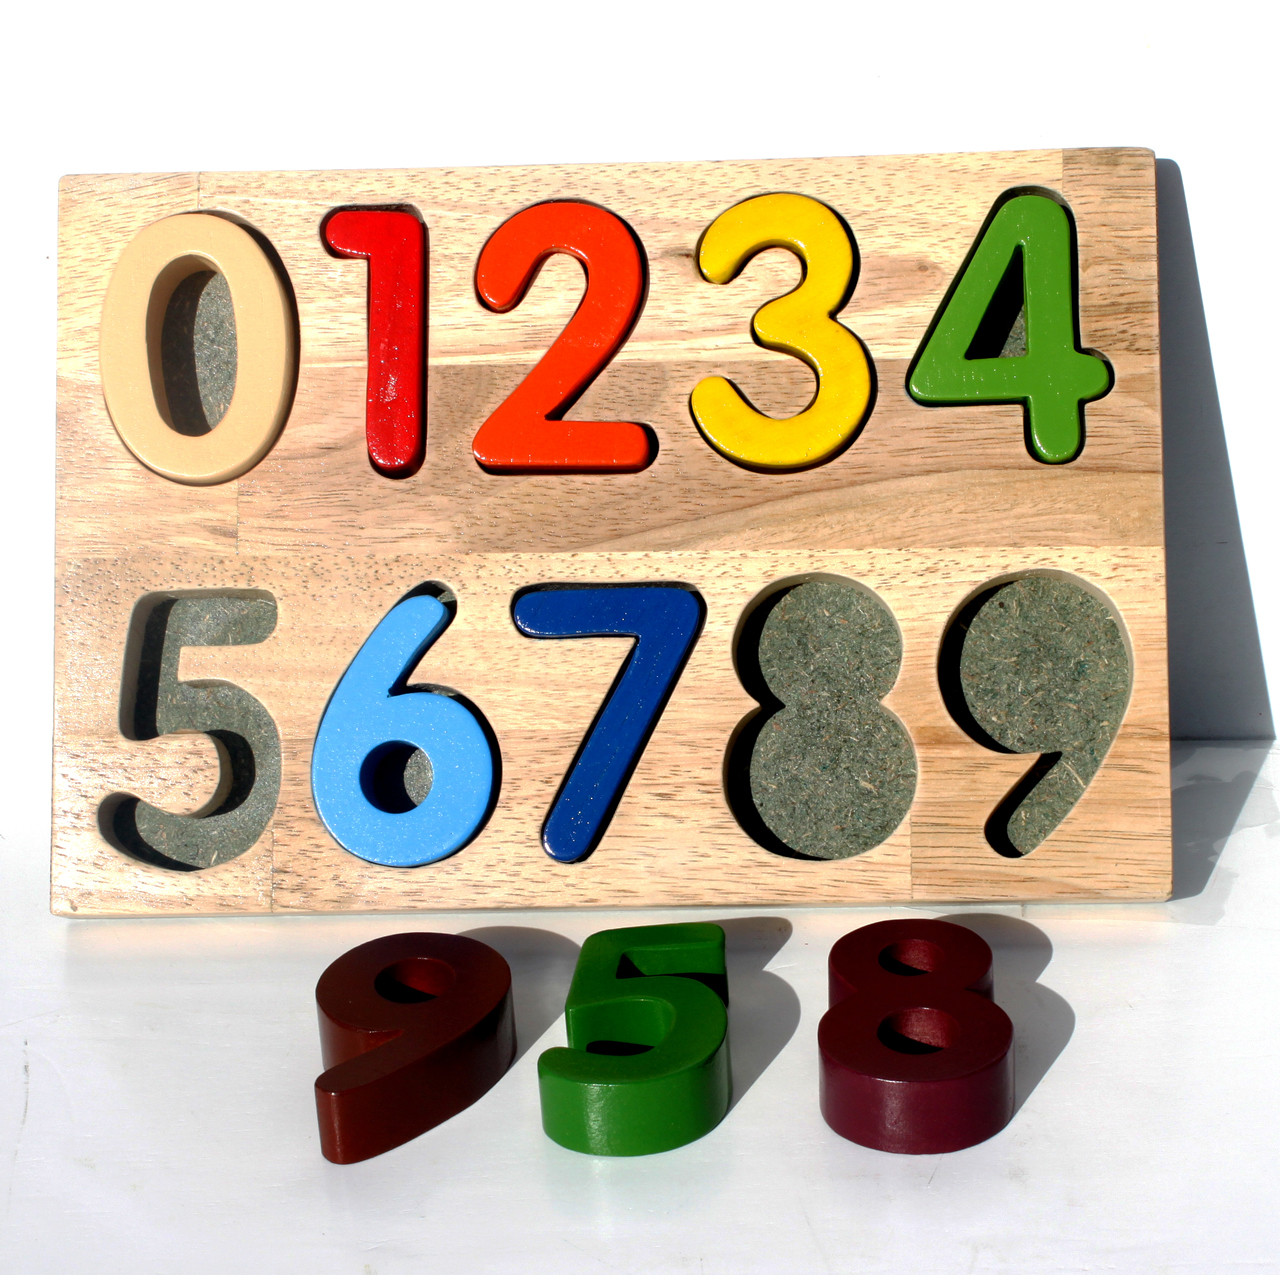 Toys For Learning Numbers : Wooden toy puzzle numbers